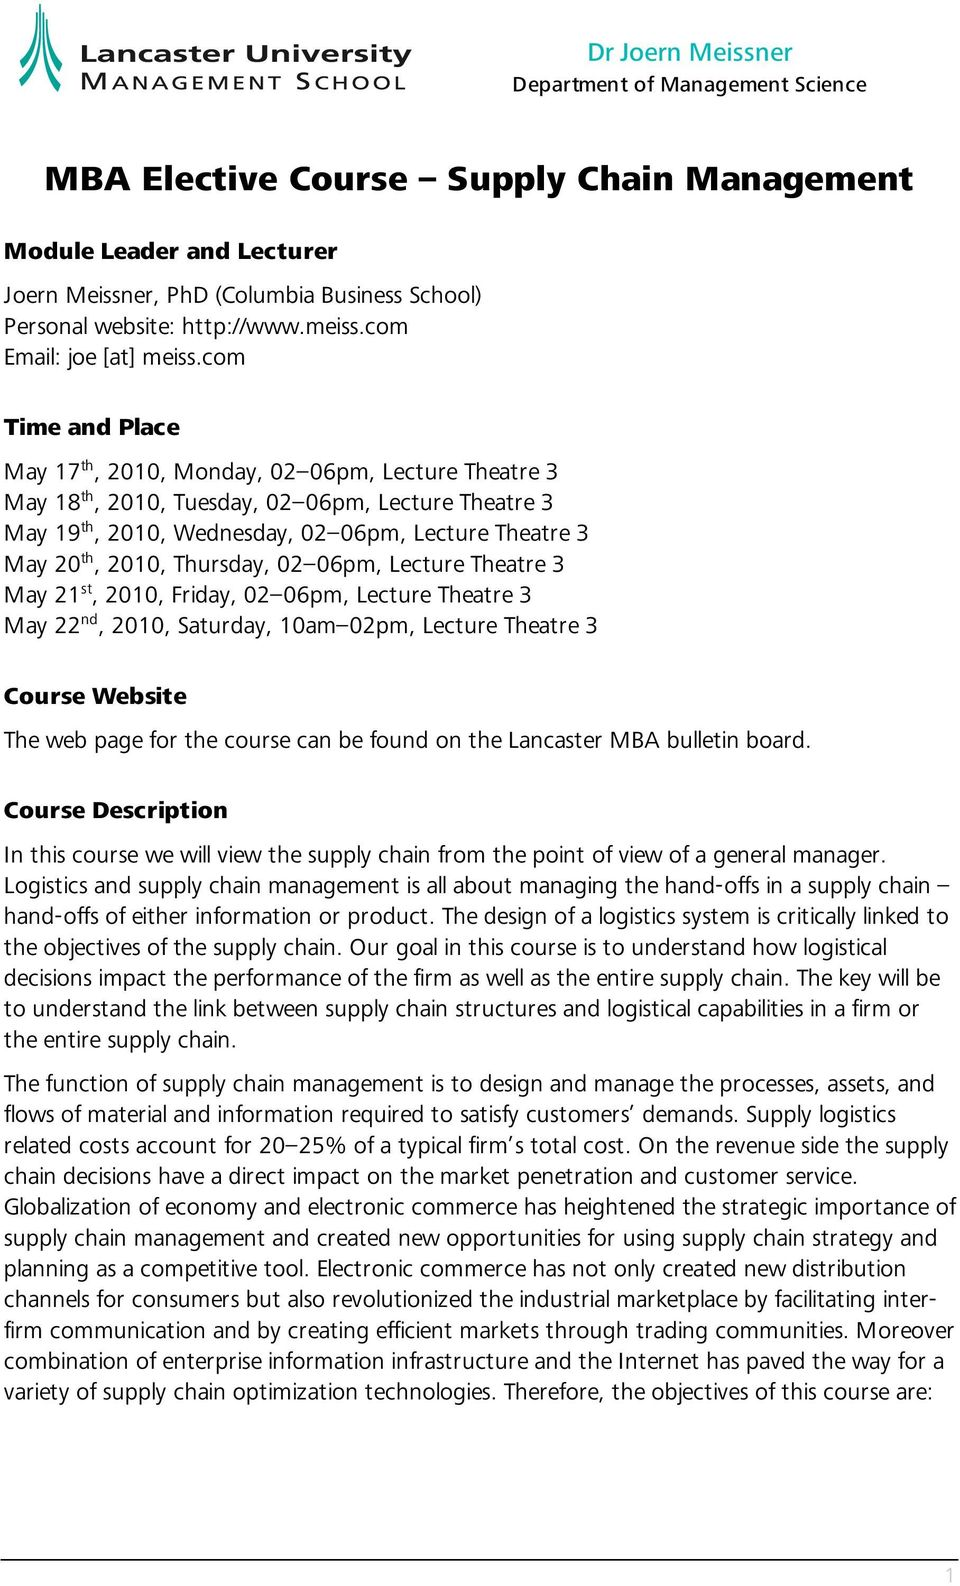 MBA Elective Course Supply Chain Management - PDF